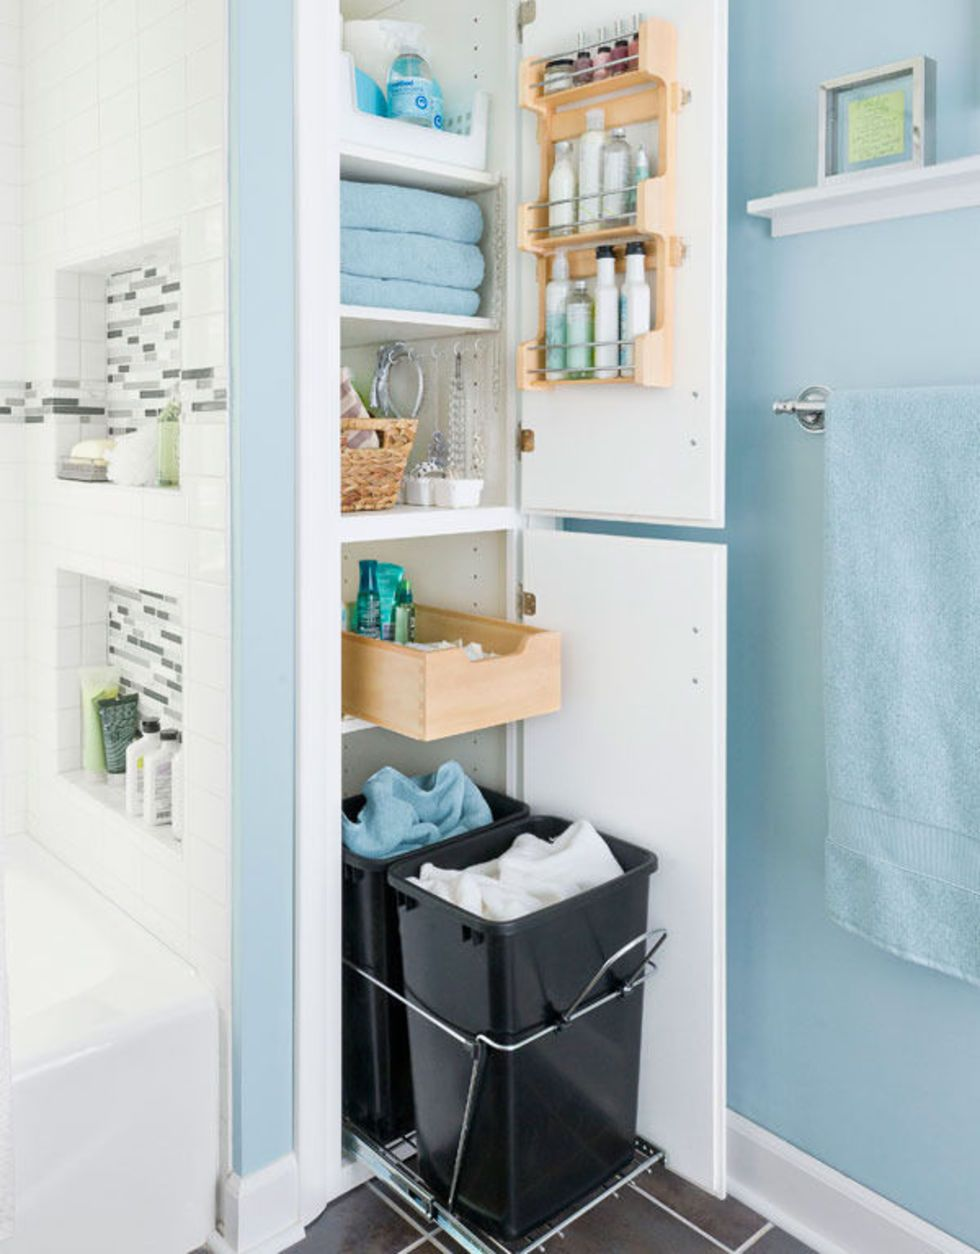 30 Best Bathroom Storage Ideas to Save Space | Bathroom | Pinterest ...